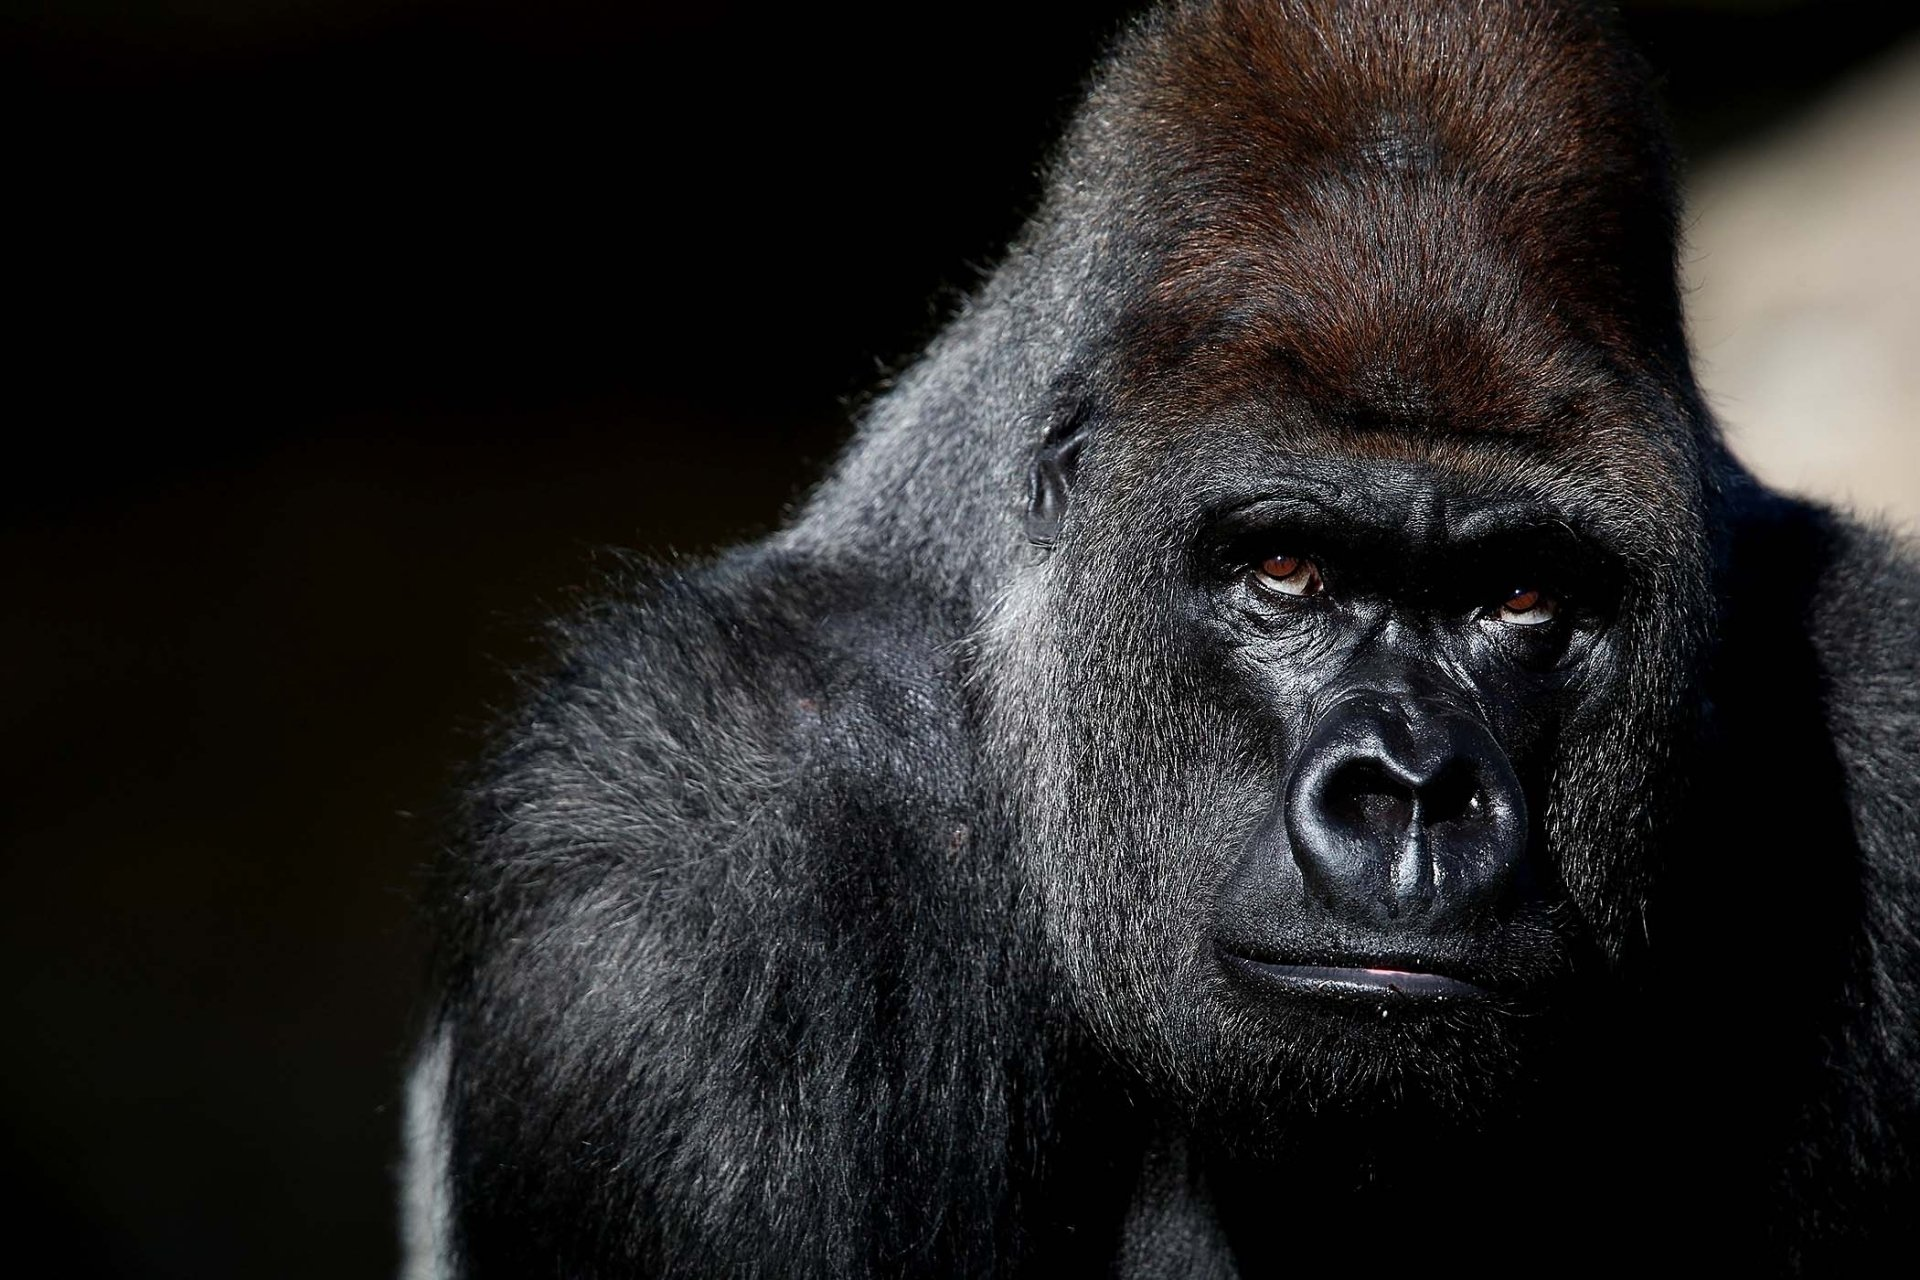 Gorilla Wallpapers Top Free Gorilla Backgrounds